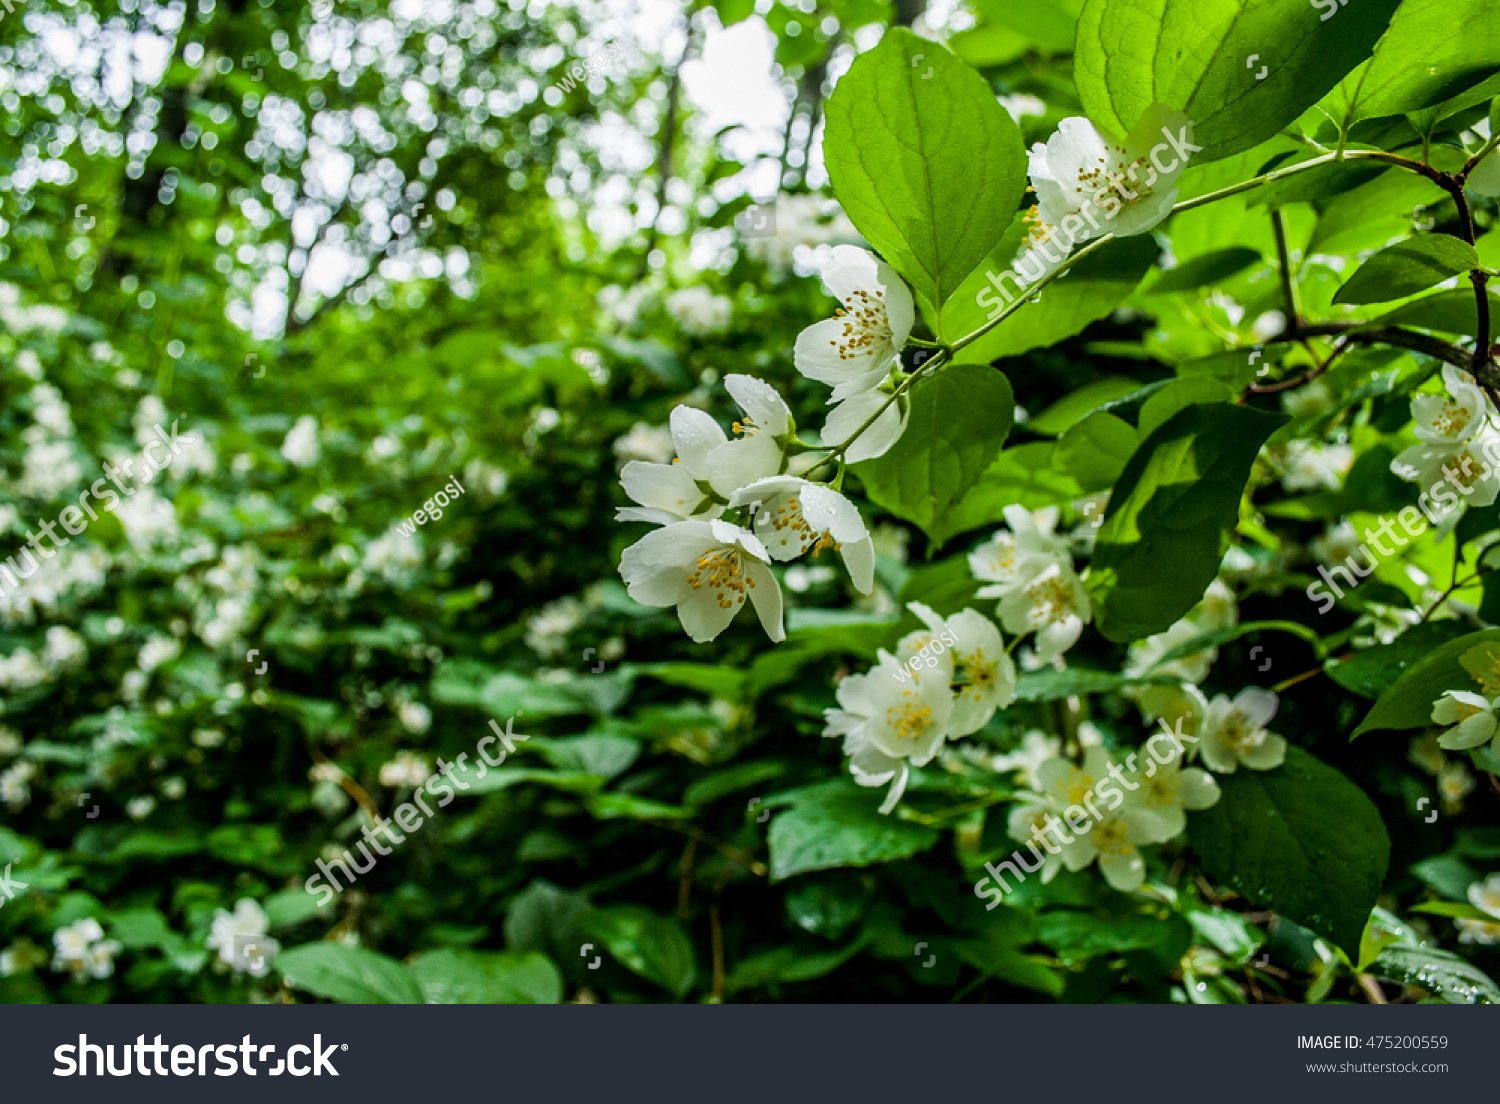 A Blooming Jasmine Bush With White Flowers Background Of Little